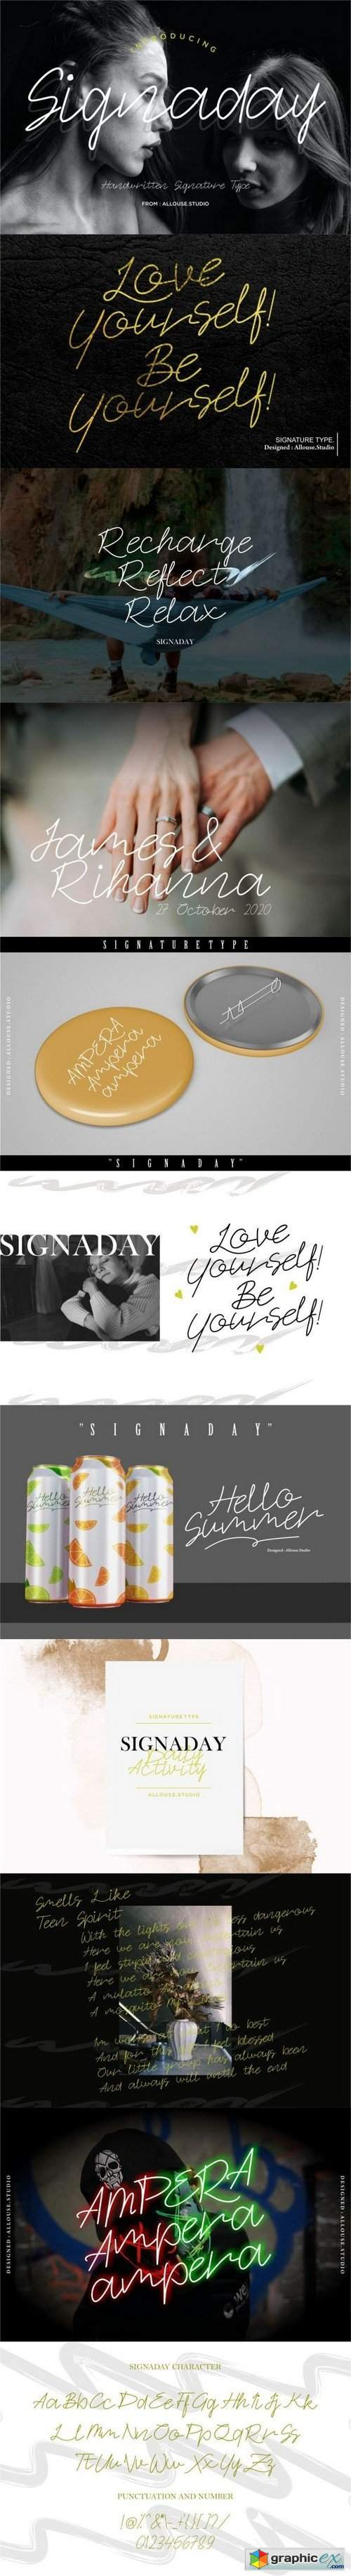 Signaday | Monoline Handwritten